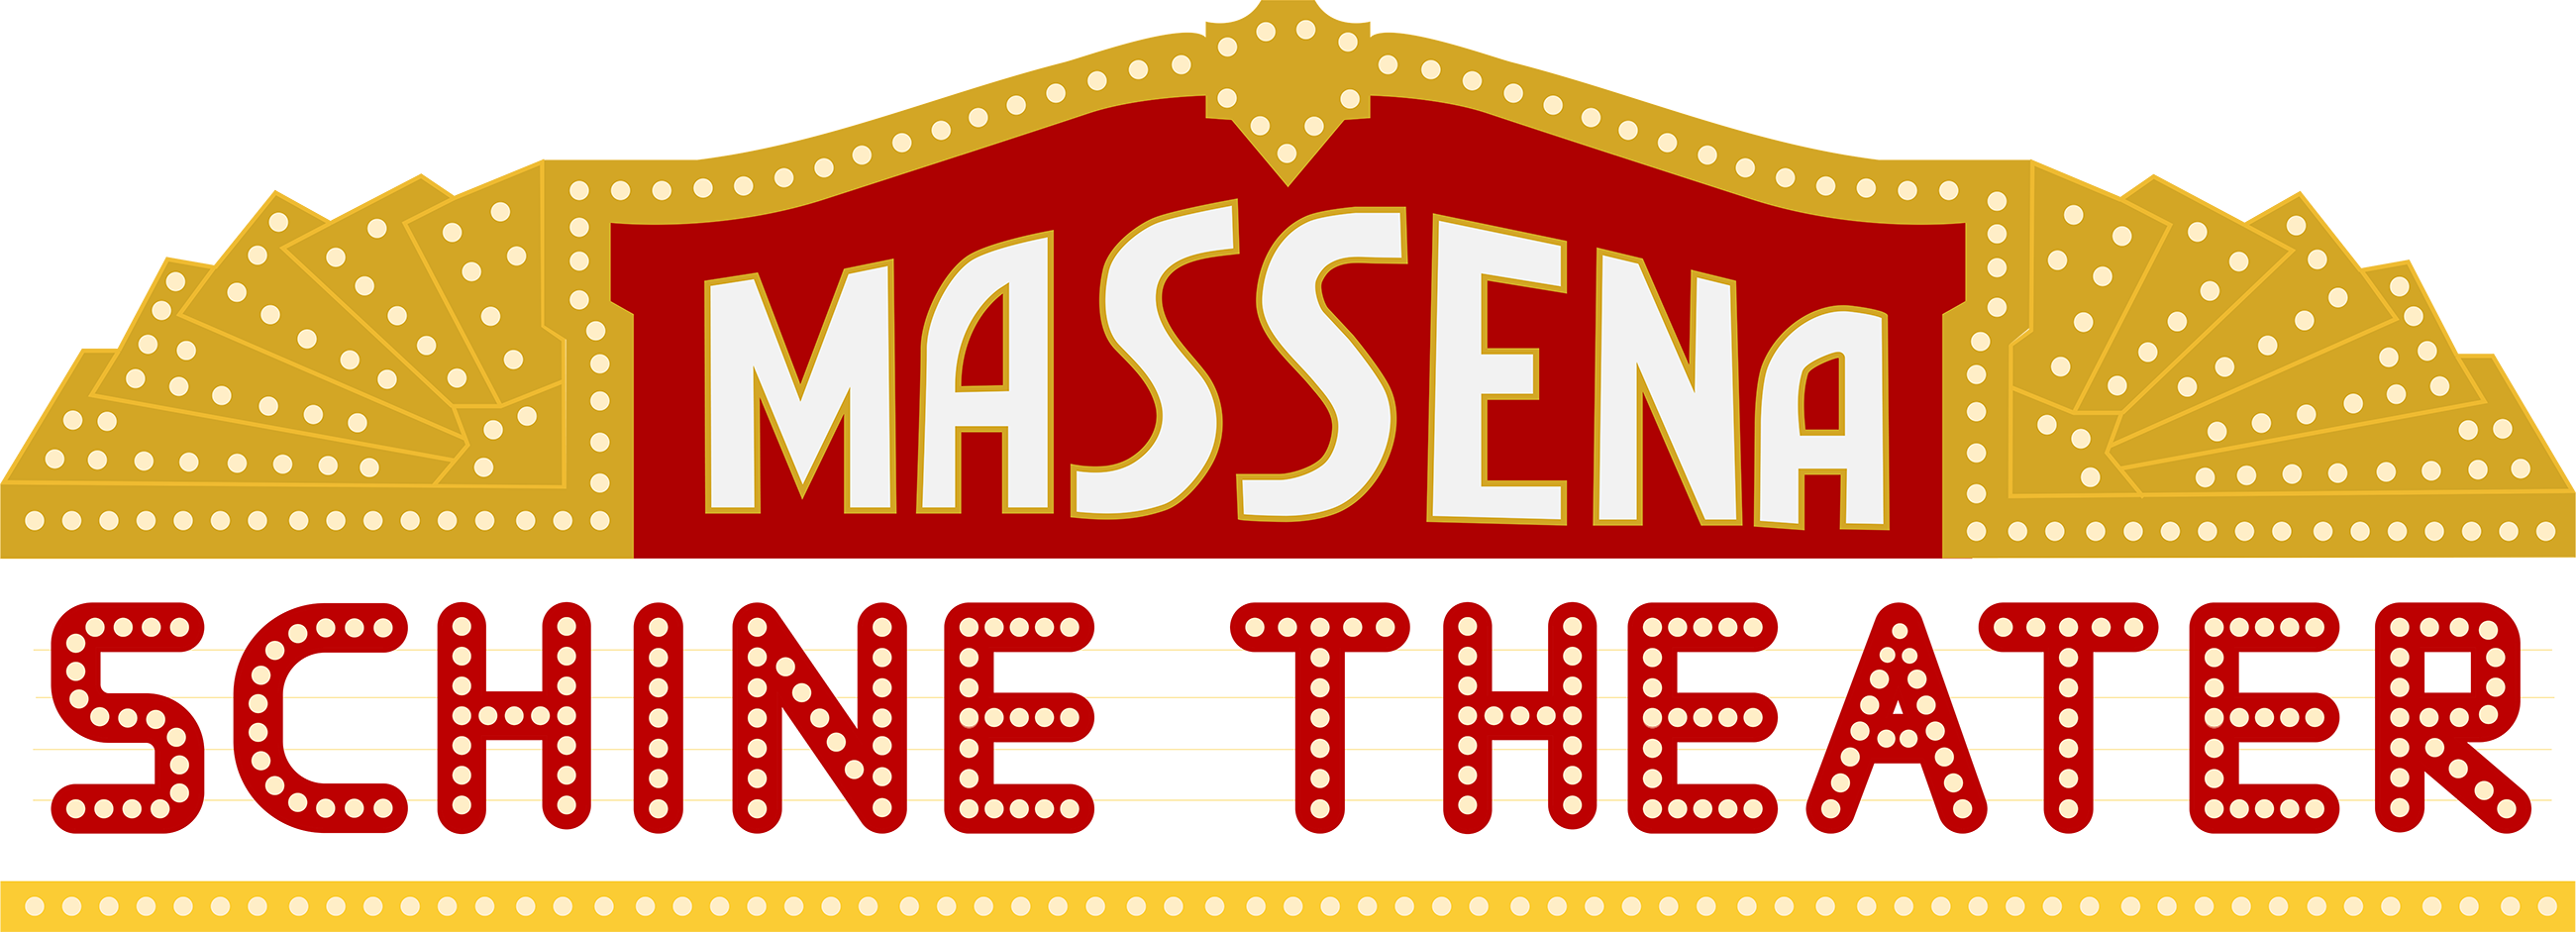 massena-theater-optimized